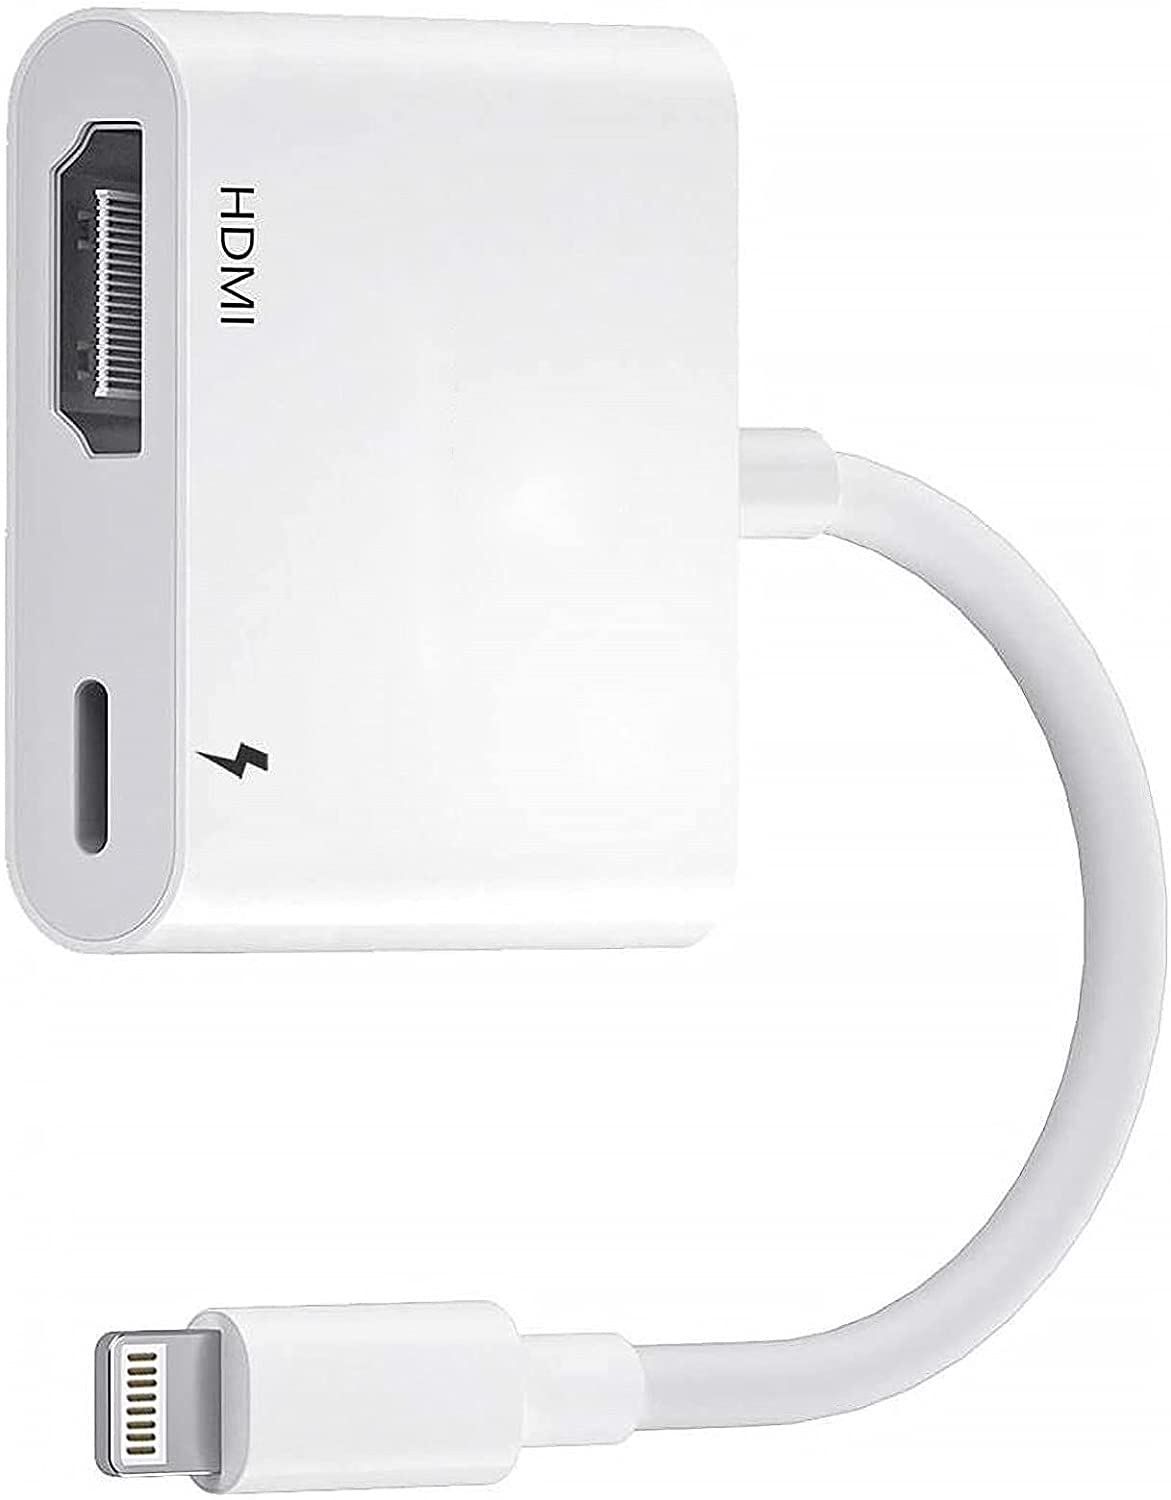 Lightning to HDMI Adapter for iPhone to TV, Apple MFi Certified 1080p Digital AV Adapter Sync Screen Connector Cable with Charging Port Compatible for iPhone iPad iPod to HD TV Projector Monitor